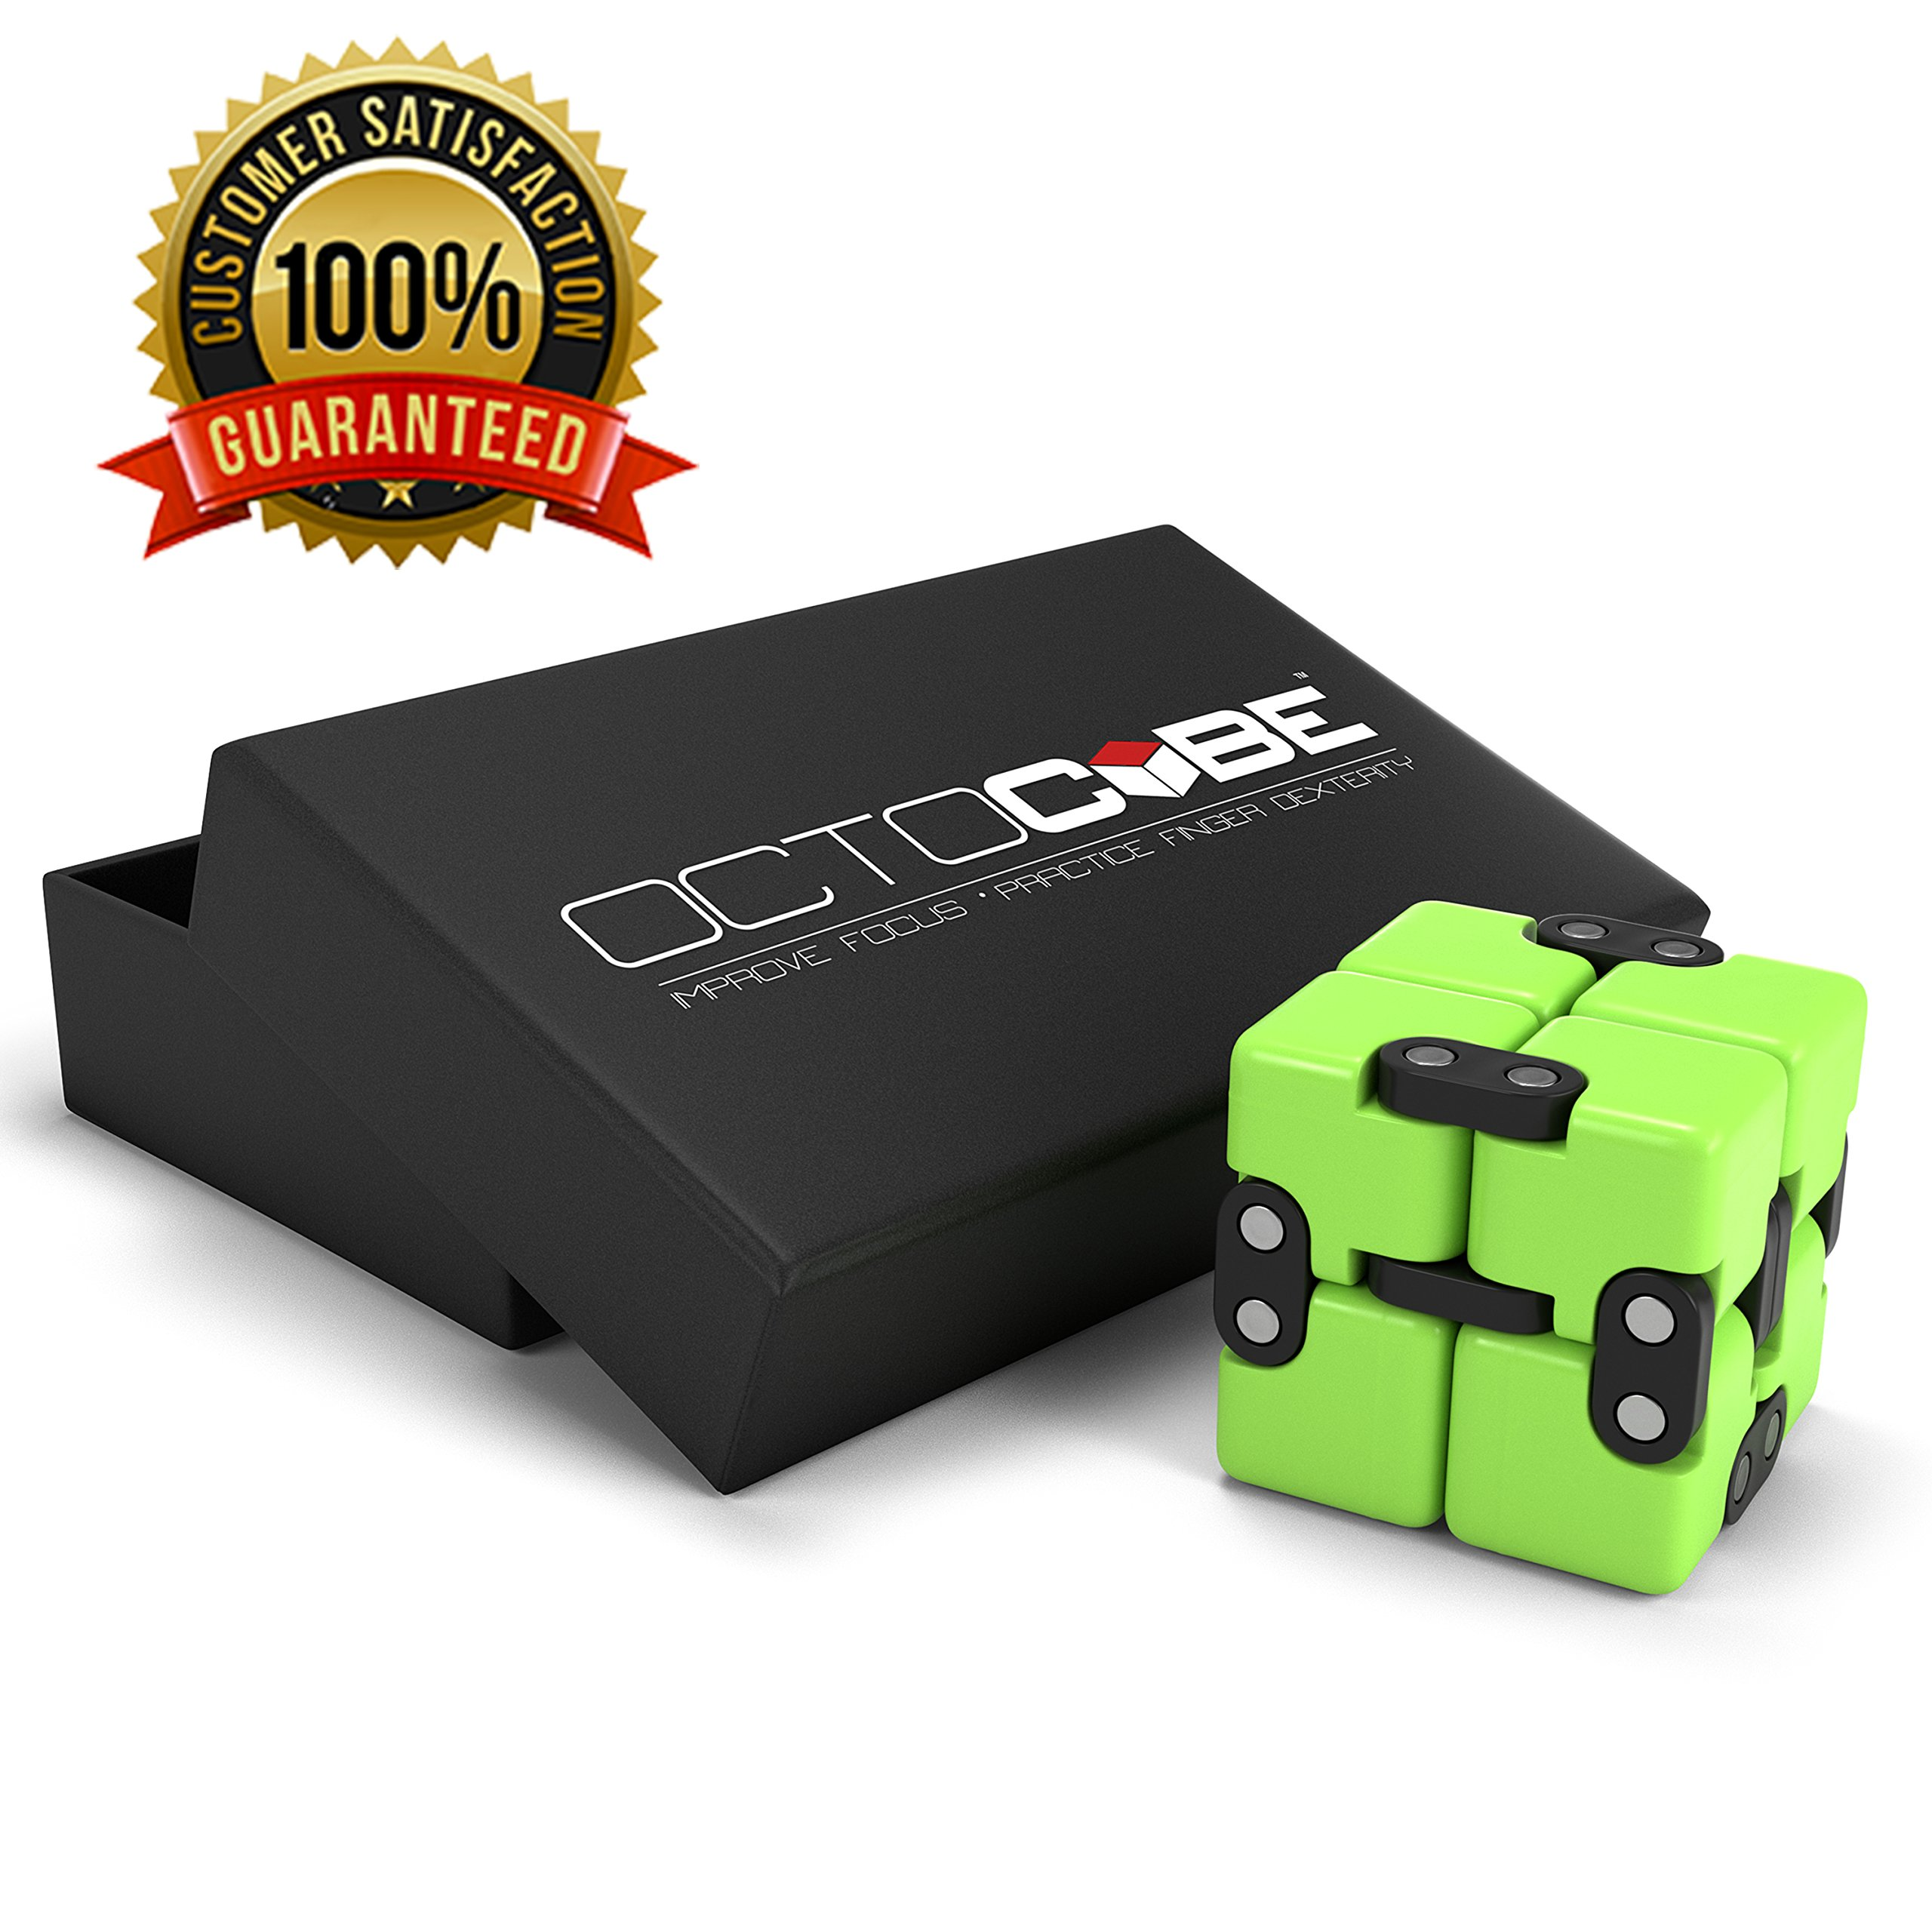 OCTOCUBE Infinity Cube Fidget Toy w/Gift Box - Luxury Infinite Cool Gadget for Kids, Adults - Prime Sensory Stress Relief, Pressure Reduction Unique Distraction for Autism, Quit Smoking - Green by OCTOCUBE